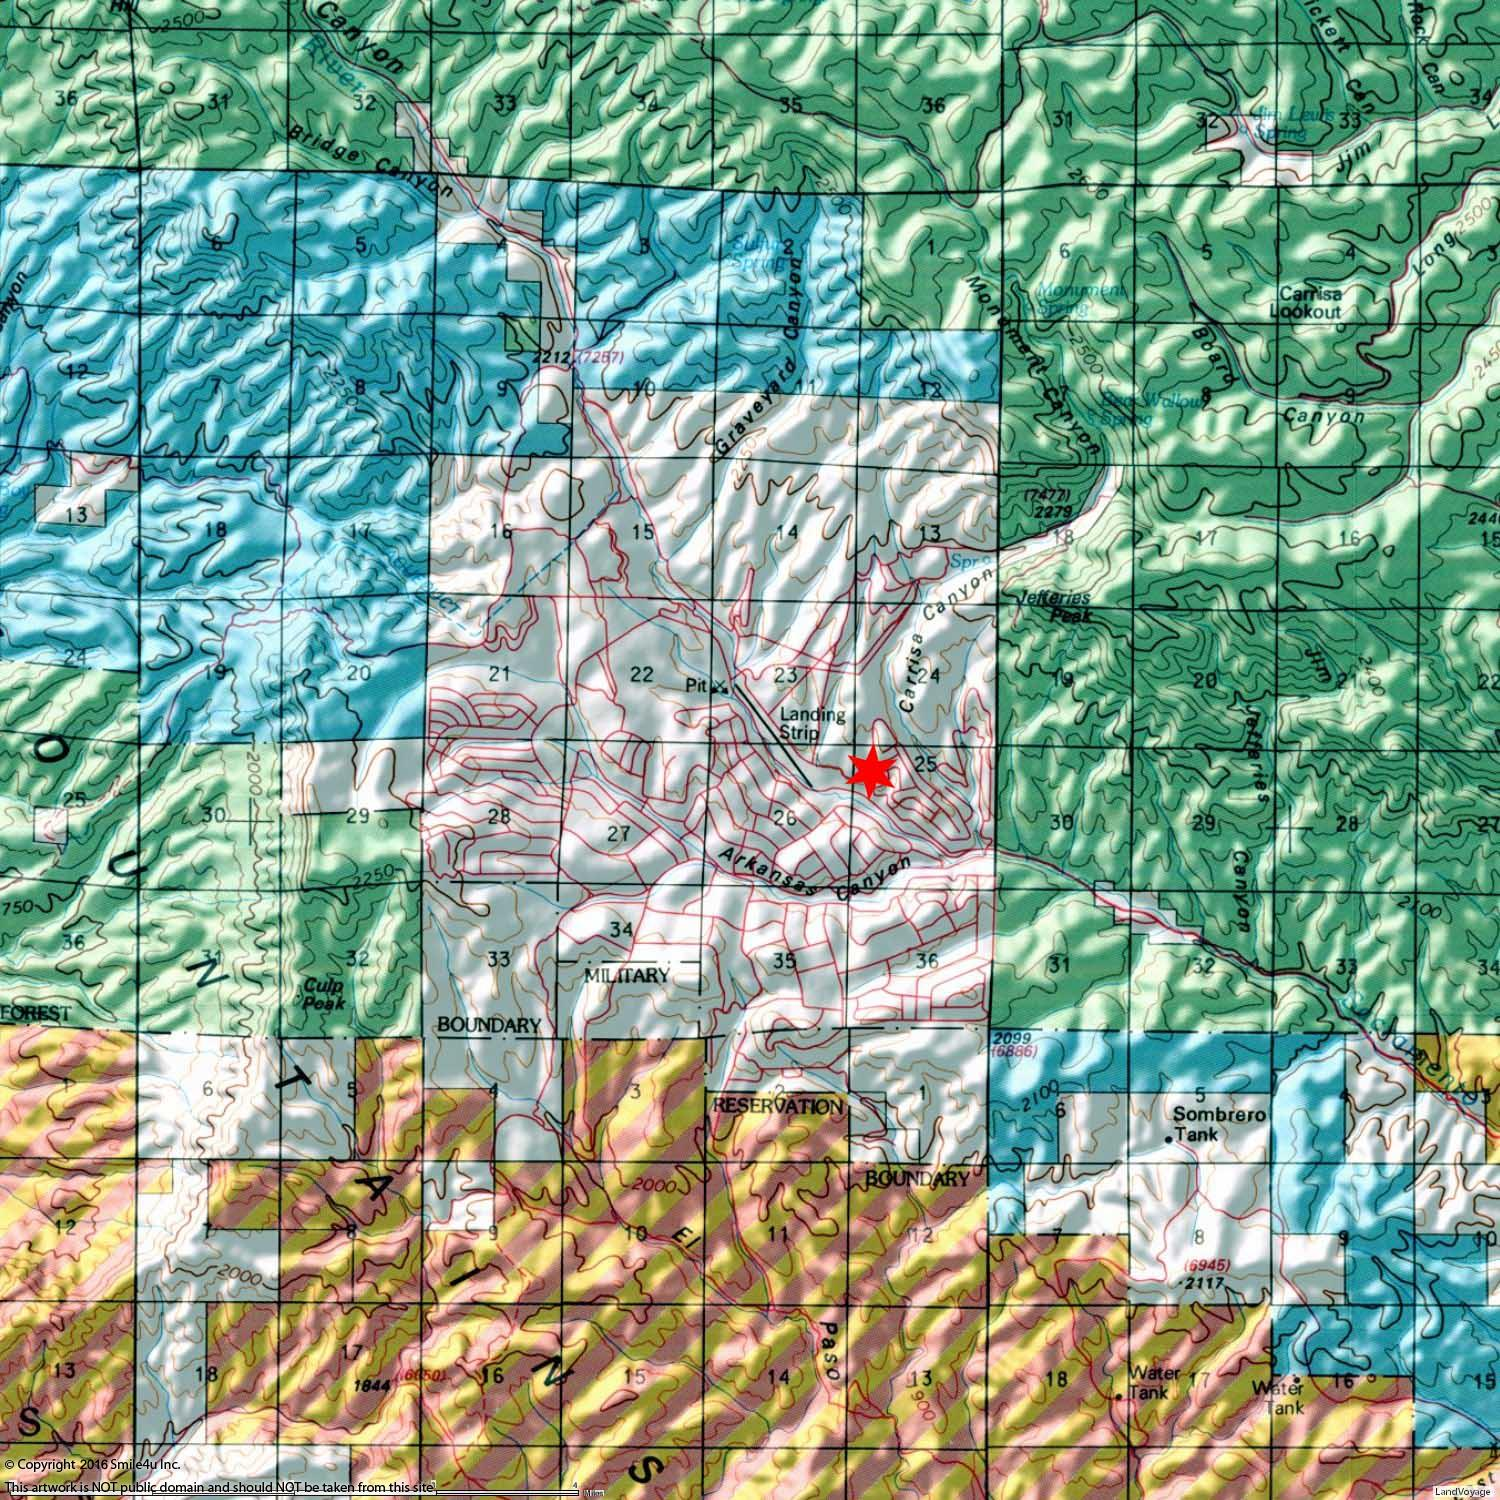 665797_watermarked_Timberon BLM Map.jpg